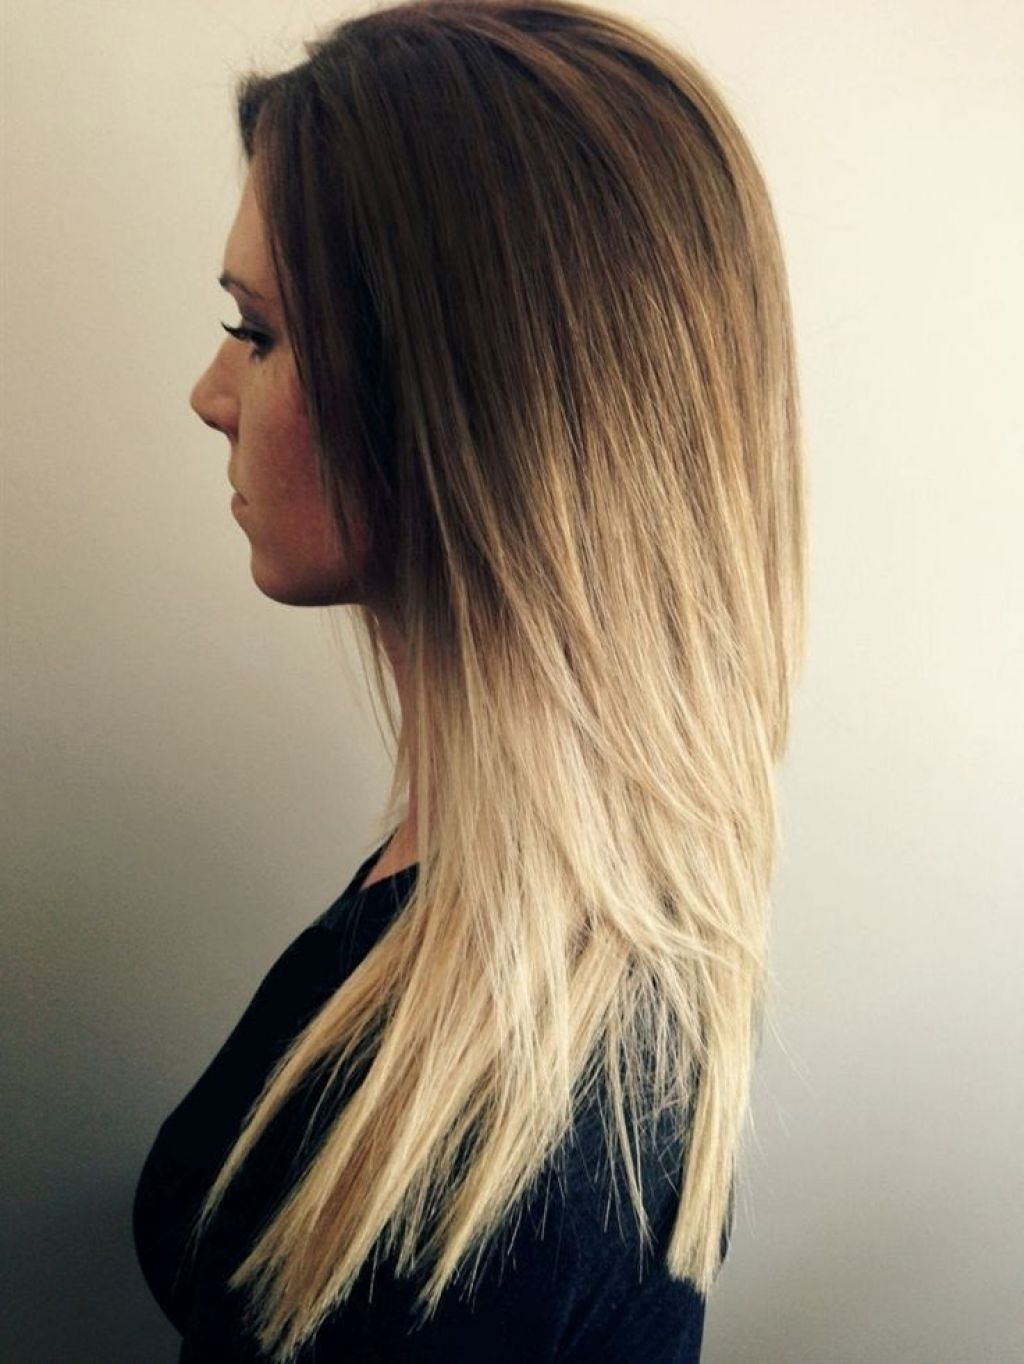 Blunt, Long Hairstyles Trends: Prom Hair Styles pictures